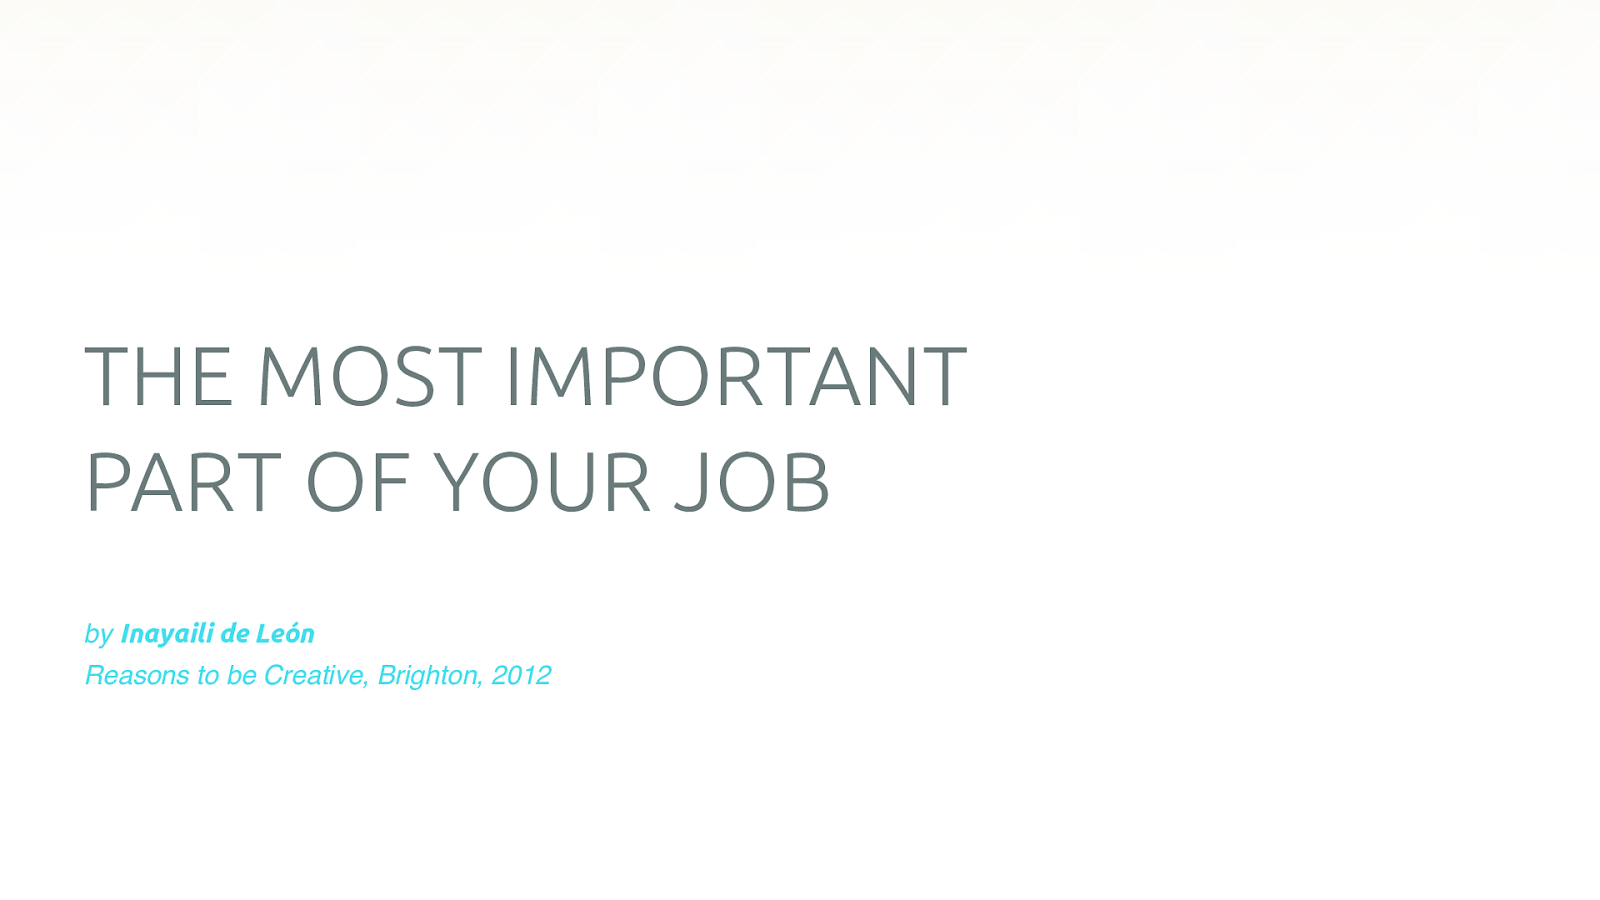 The most important part of your job